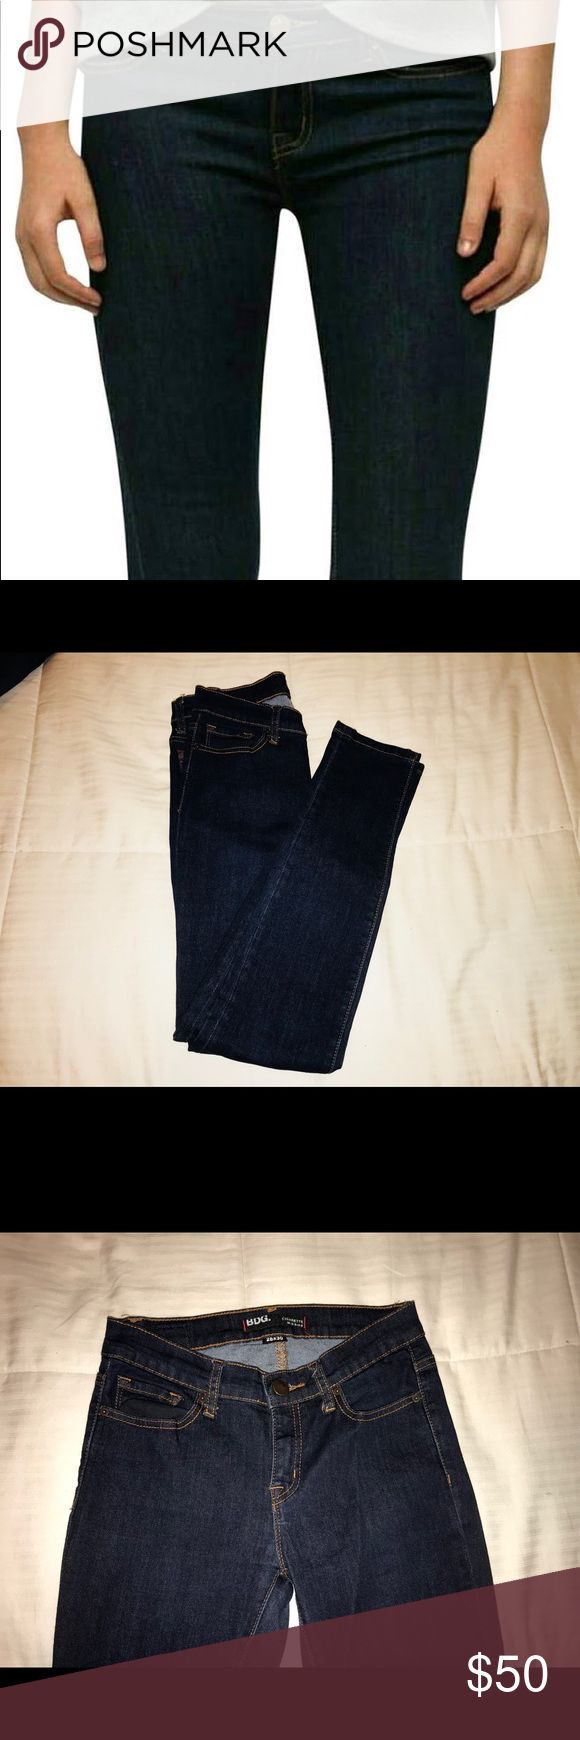 NWOT BDG Cigarette Mid-rise Jeans BDG Cigarette Mid-rise Jeans in excellent condition, new without tags never been worn. Women's size 28x30. Comment with questions! Will ship out same day of purchase. BDG Jeans Skinny